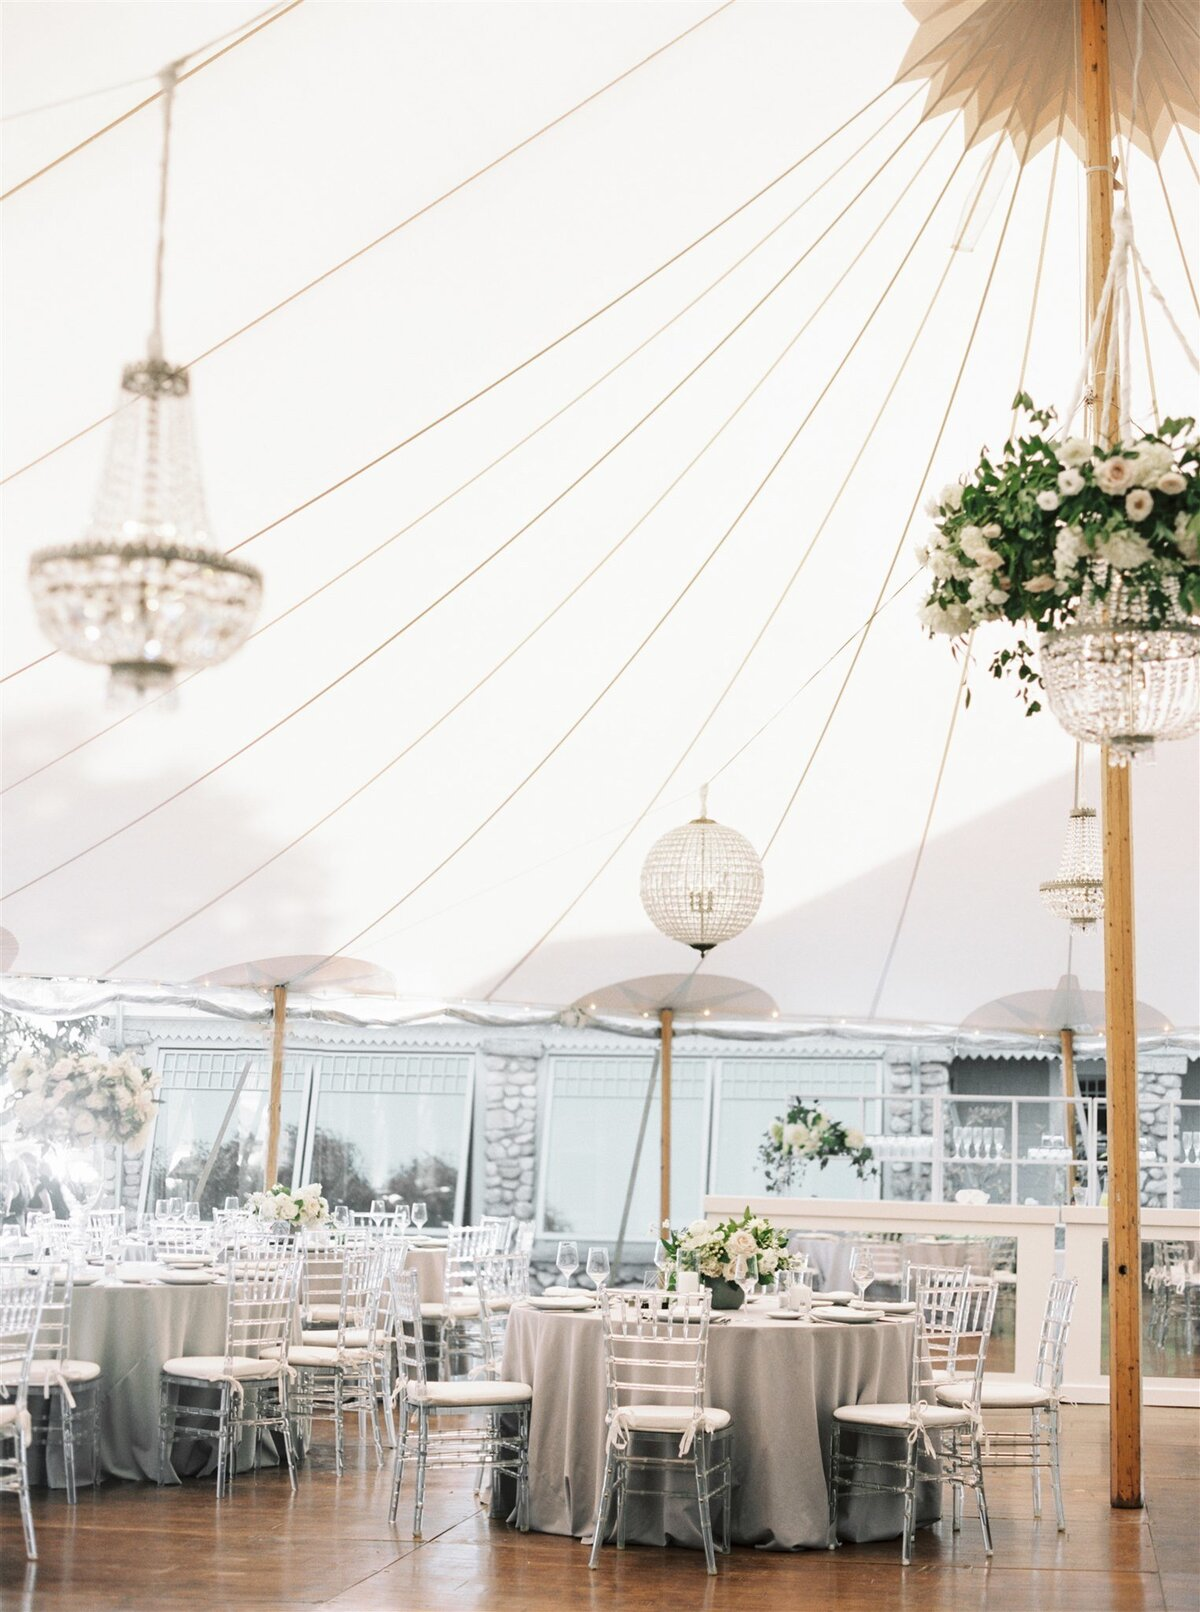 Cape Cod Tented Wedding for Tory and Ugo128